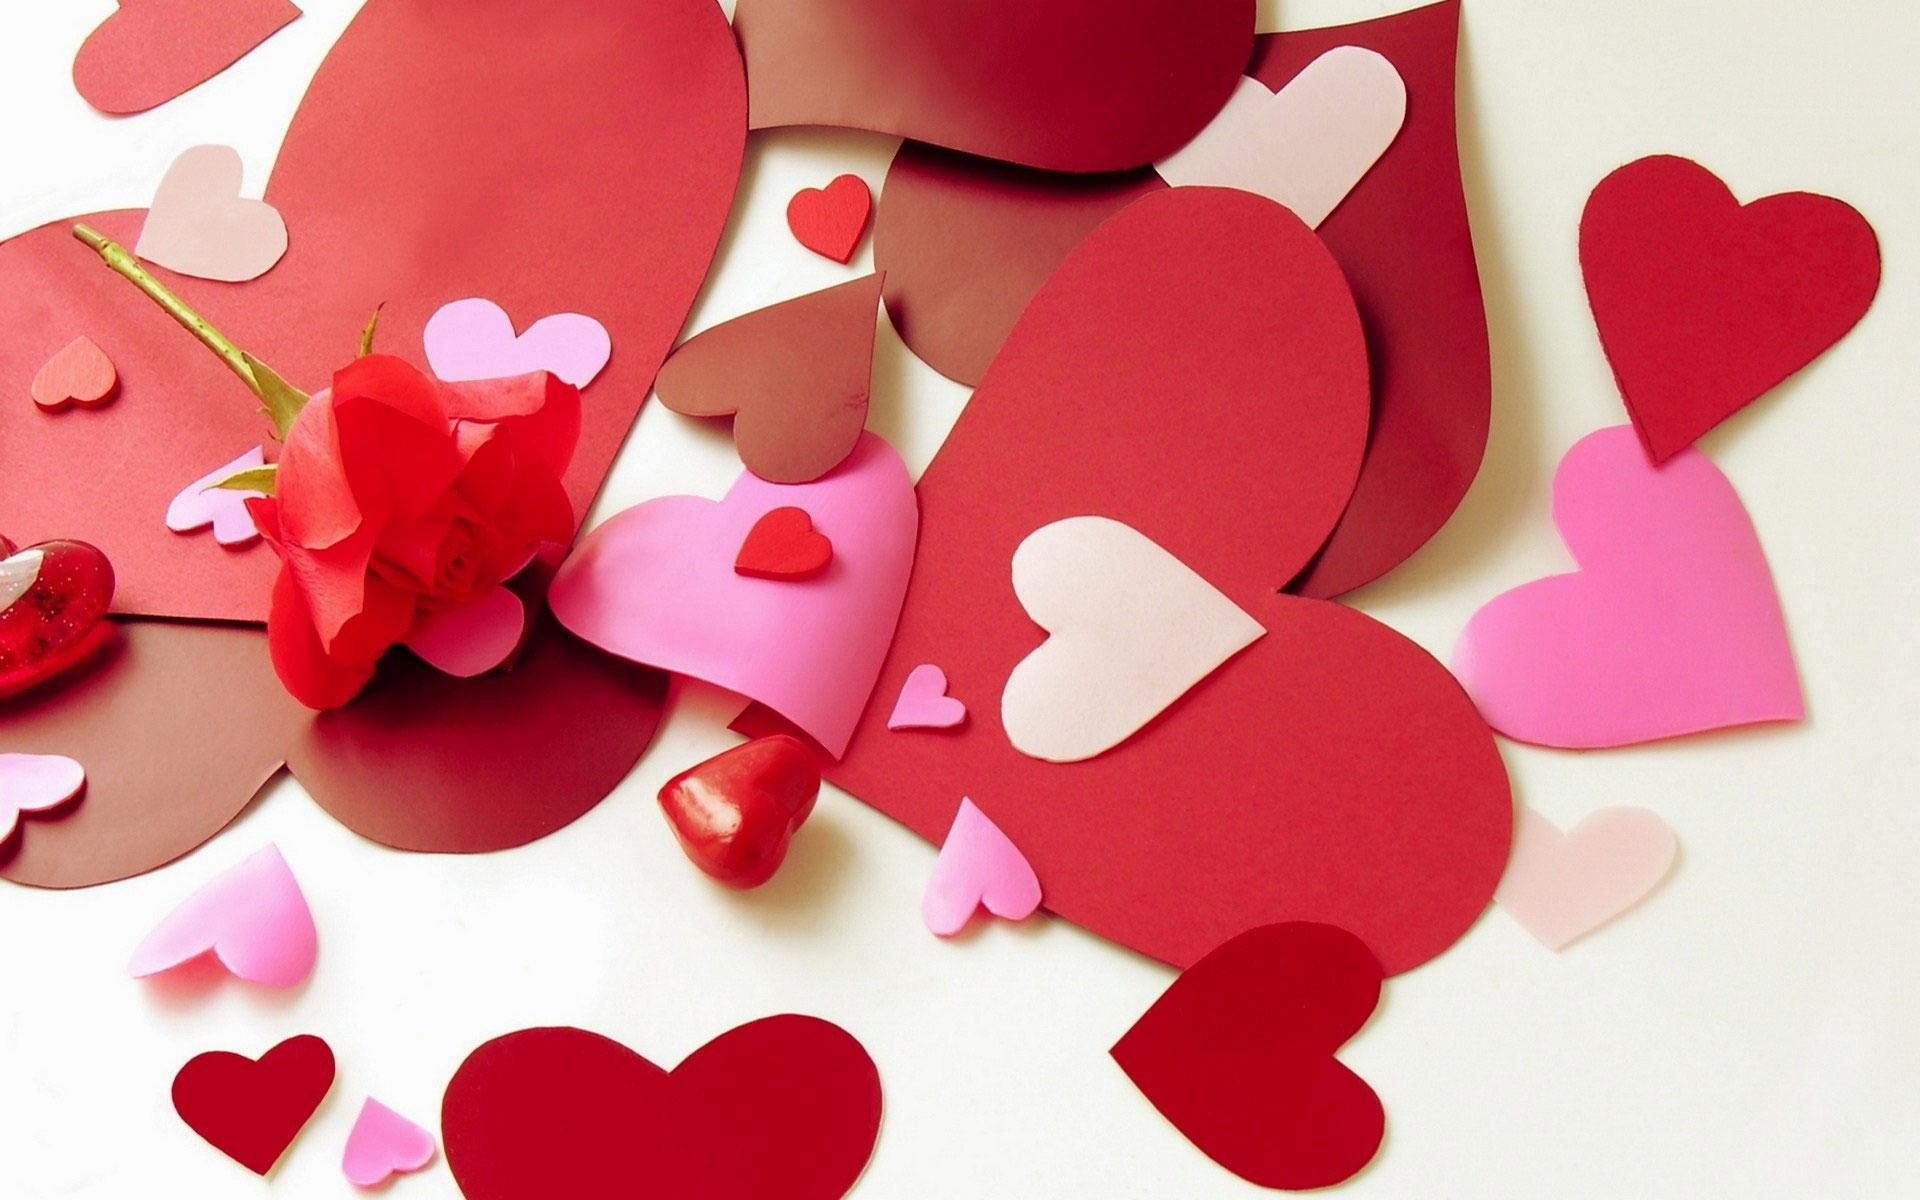 Cute Love Heart Wallpaper Hd Free Pink Heart Wallpapers in Download The  Images Of Love Heart